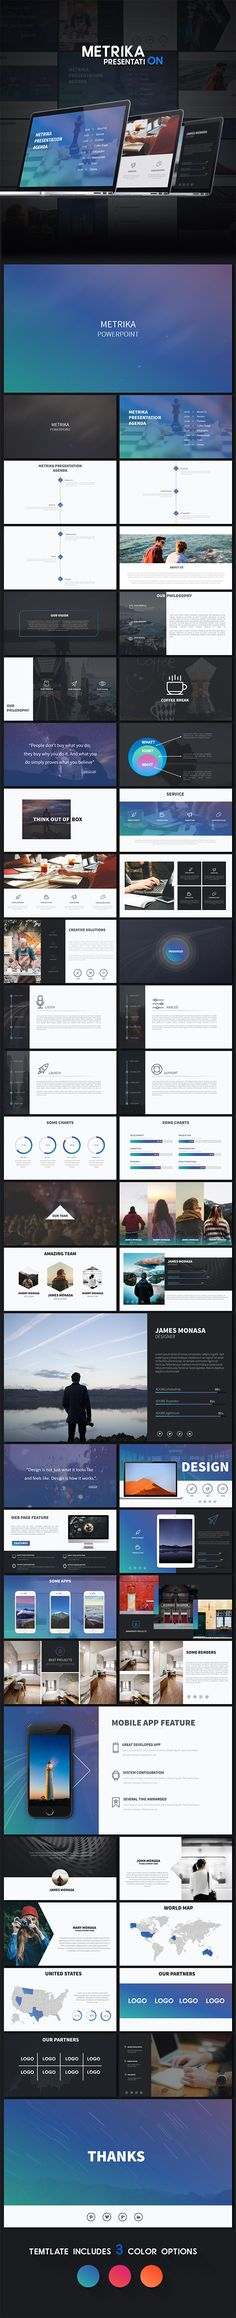 Metrika - Colorful Powerpoint Presentation Template. Download here: http://graphicriver.net/item/metrika-colorful-powerpoint-presentation/15817318?ref=ksioks